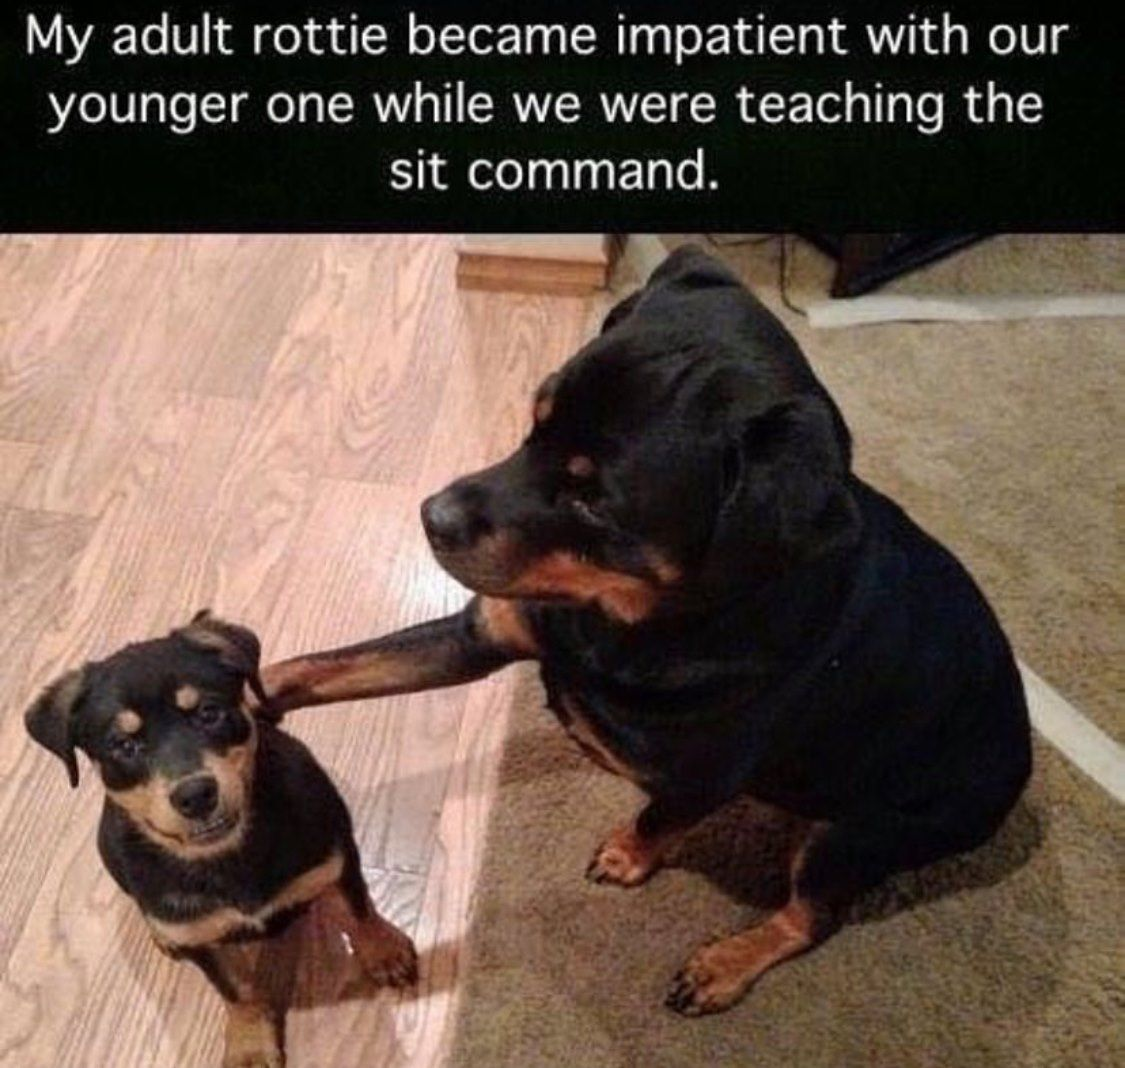 My adult rottie became impatient with our younger one while we were teaching the sit command.